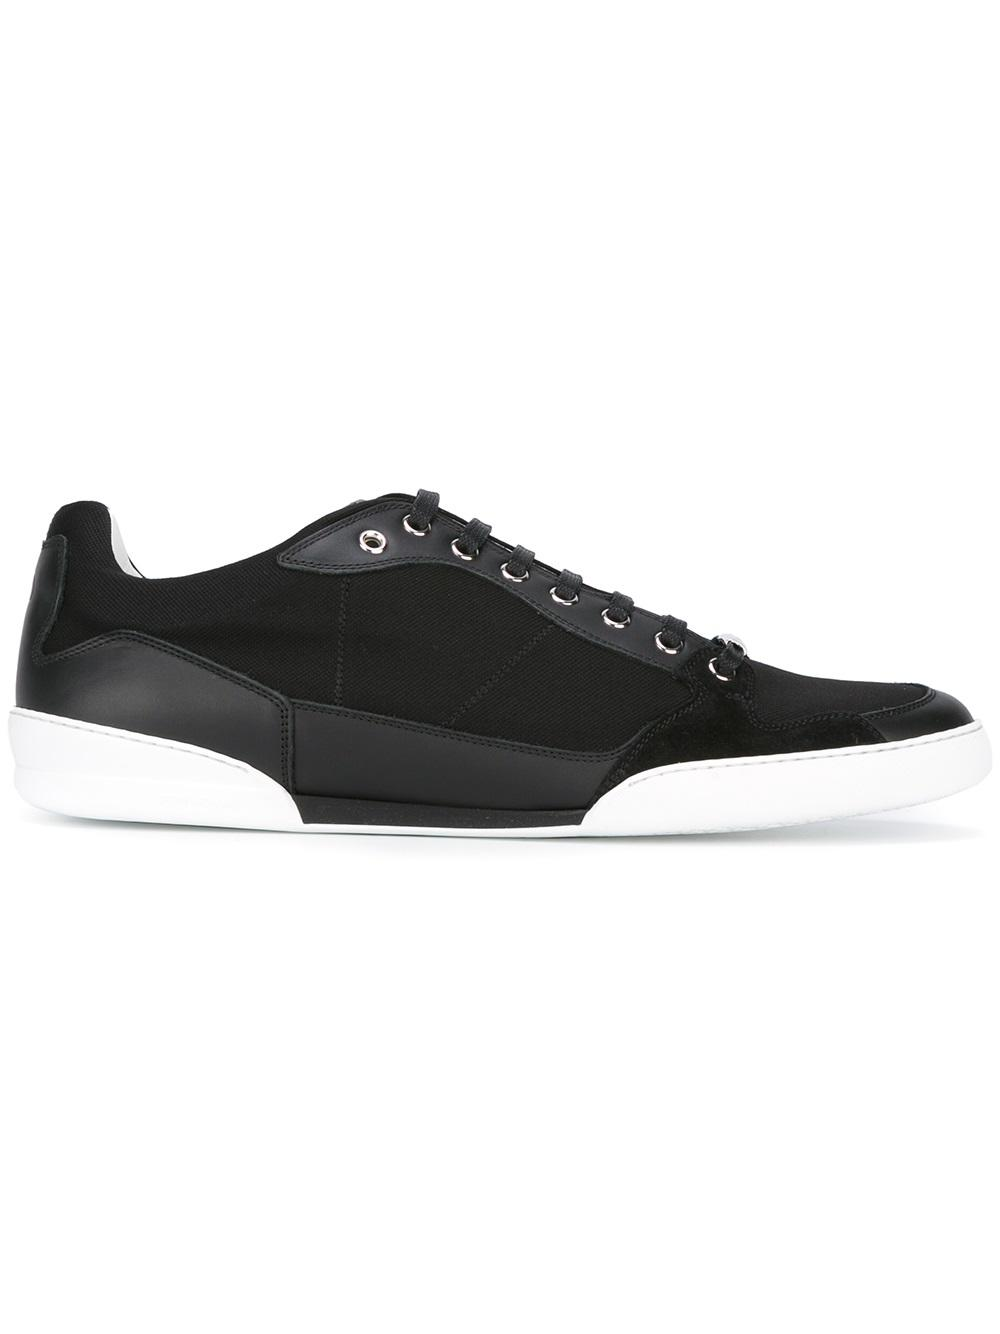 Sneakers homme ouedkniss